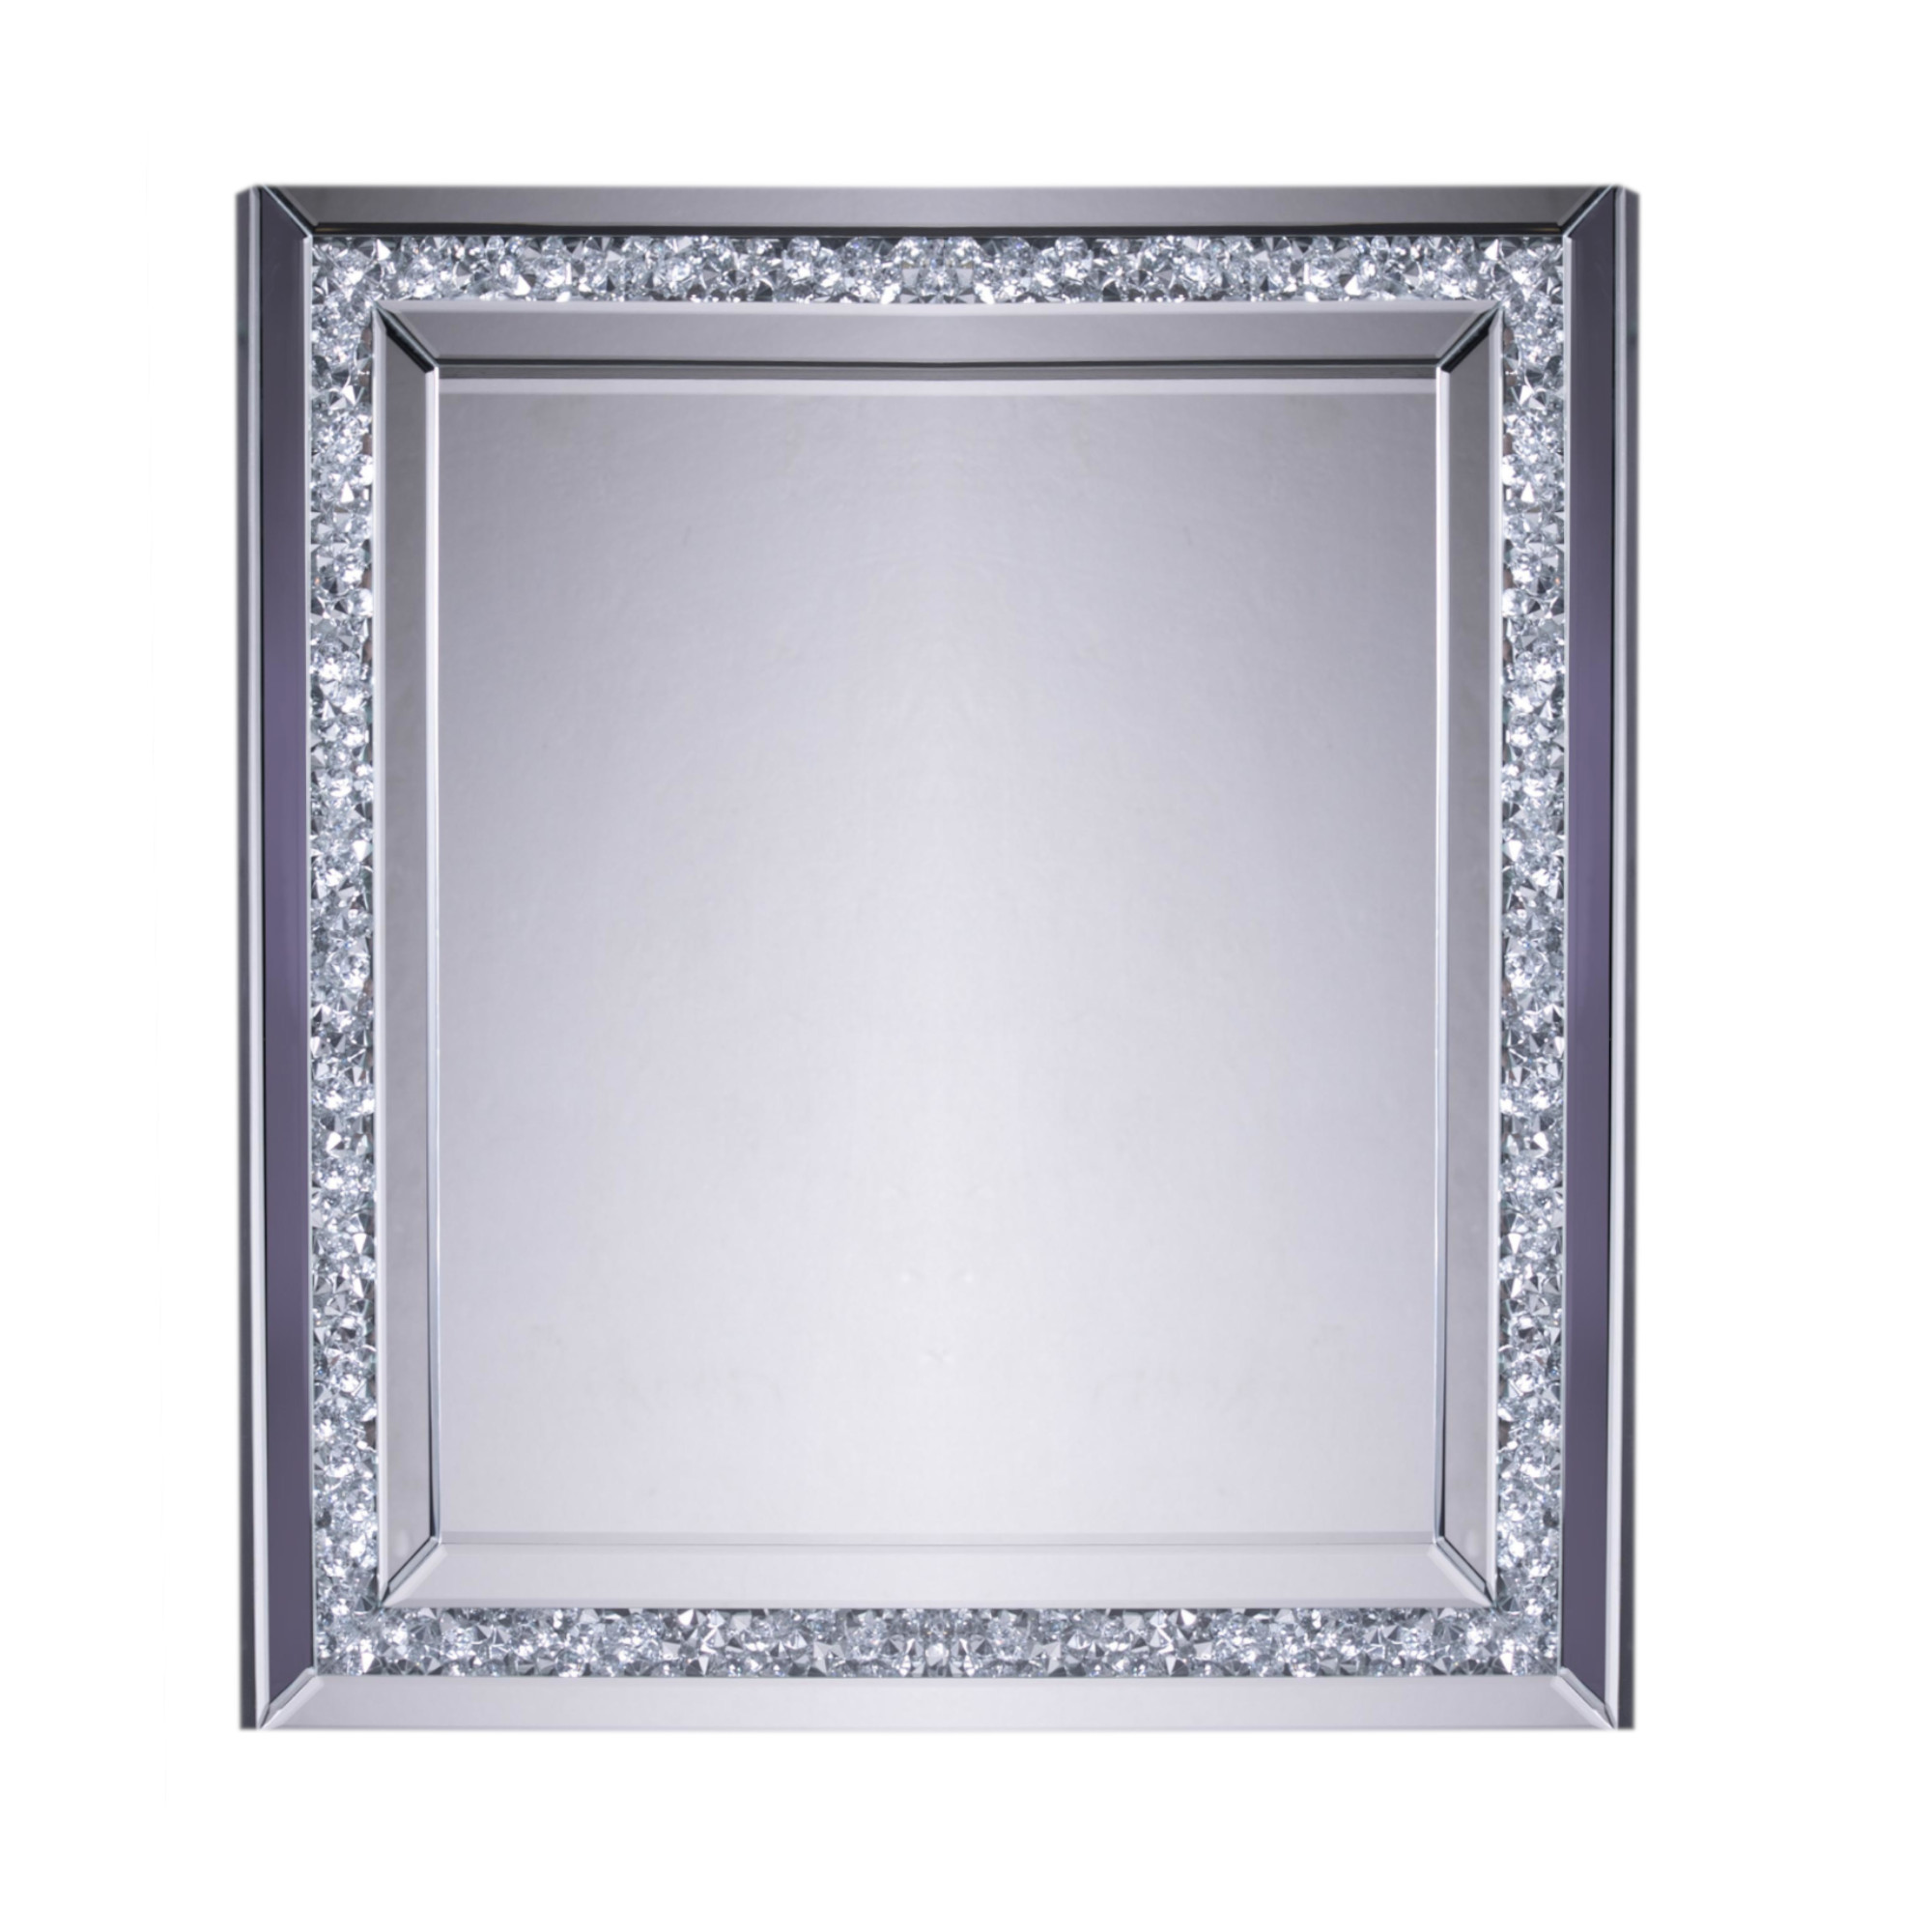 GEM Mirrored Wall Hanging Mirror